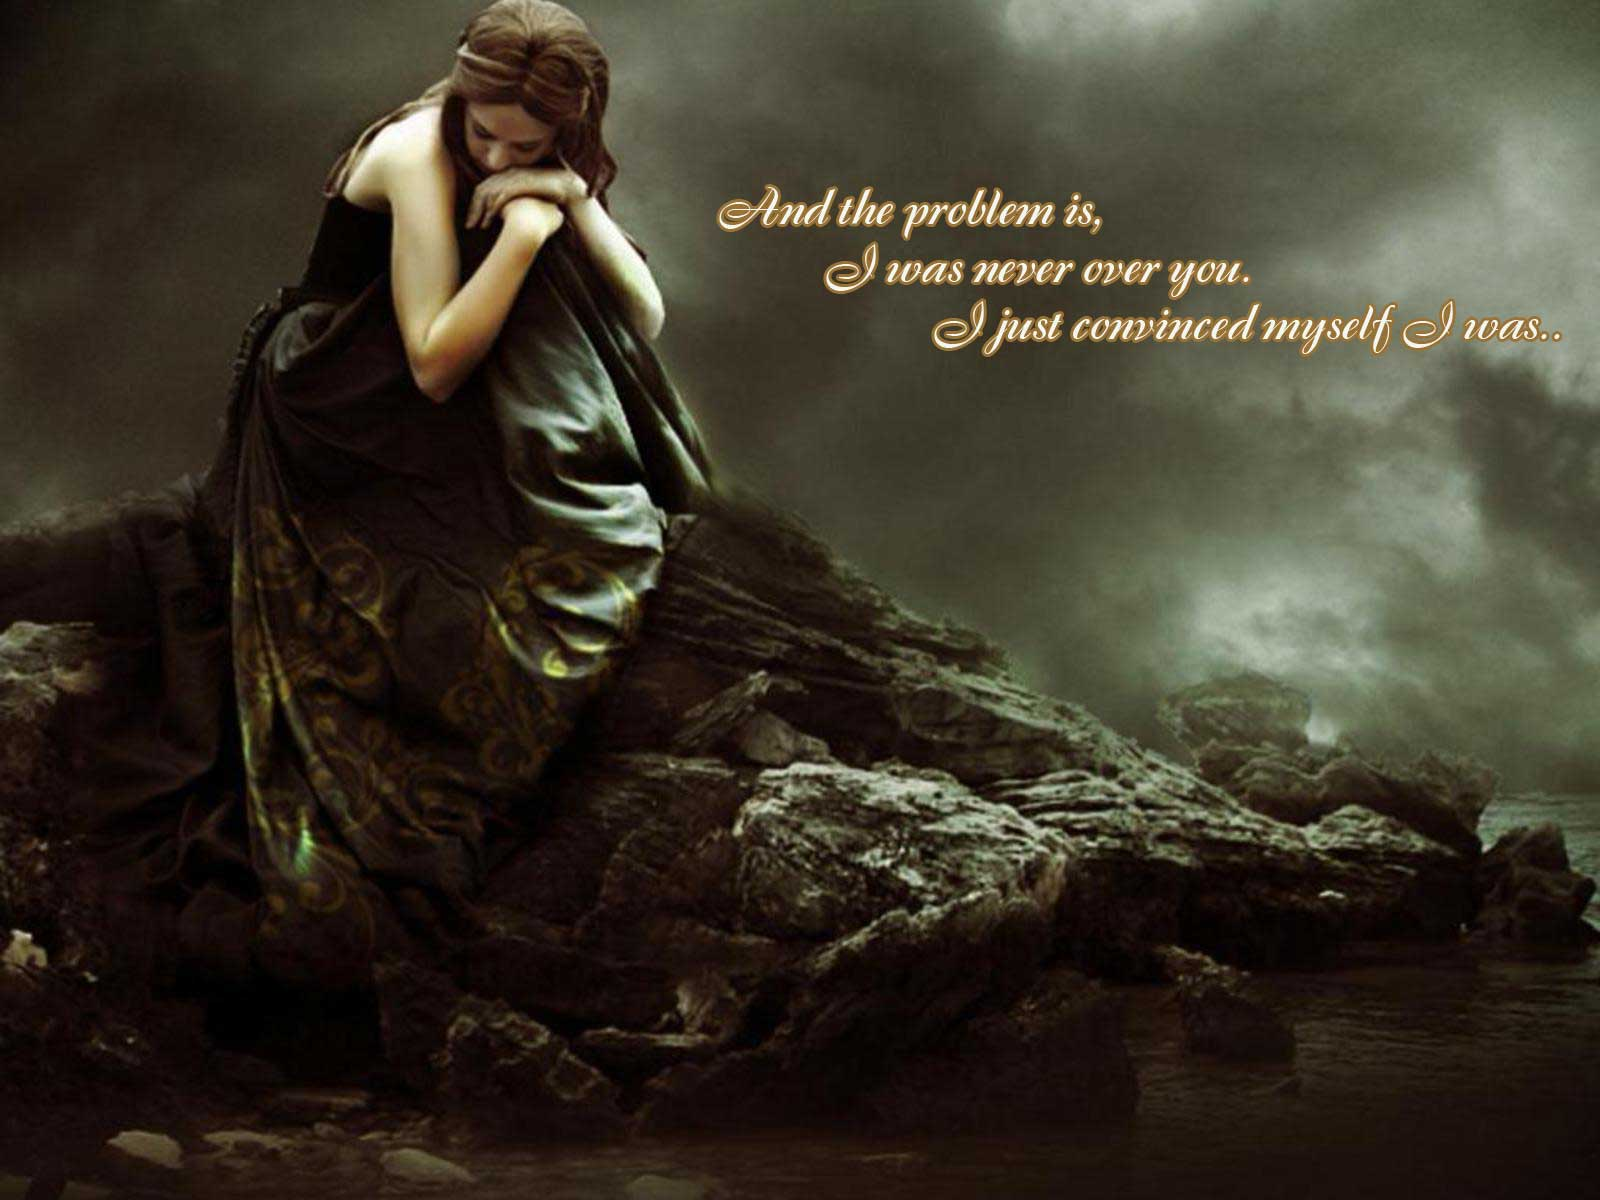 sad love quotes wallpapers free download,mythology,cg artwork,photography,daydream,happy